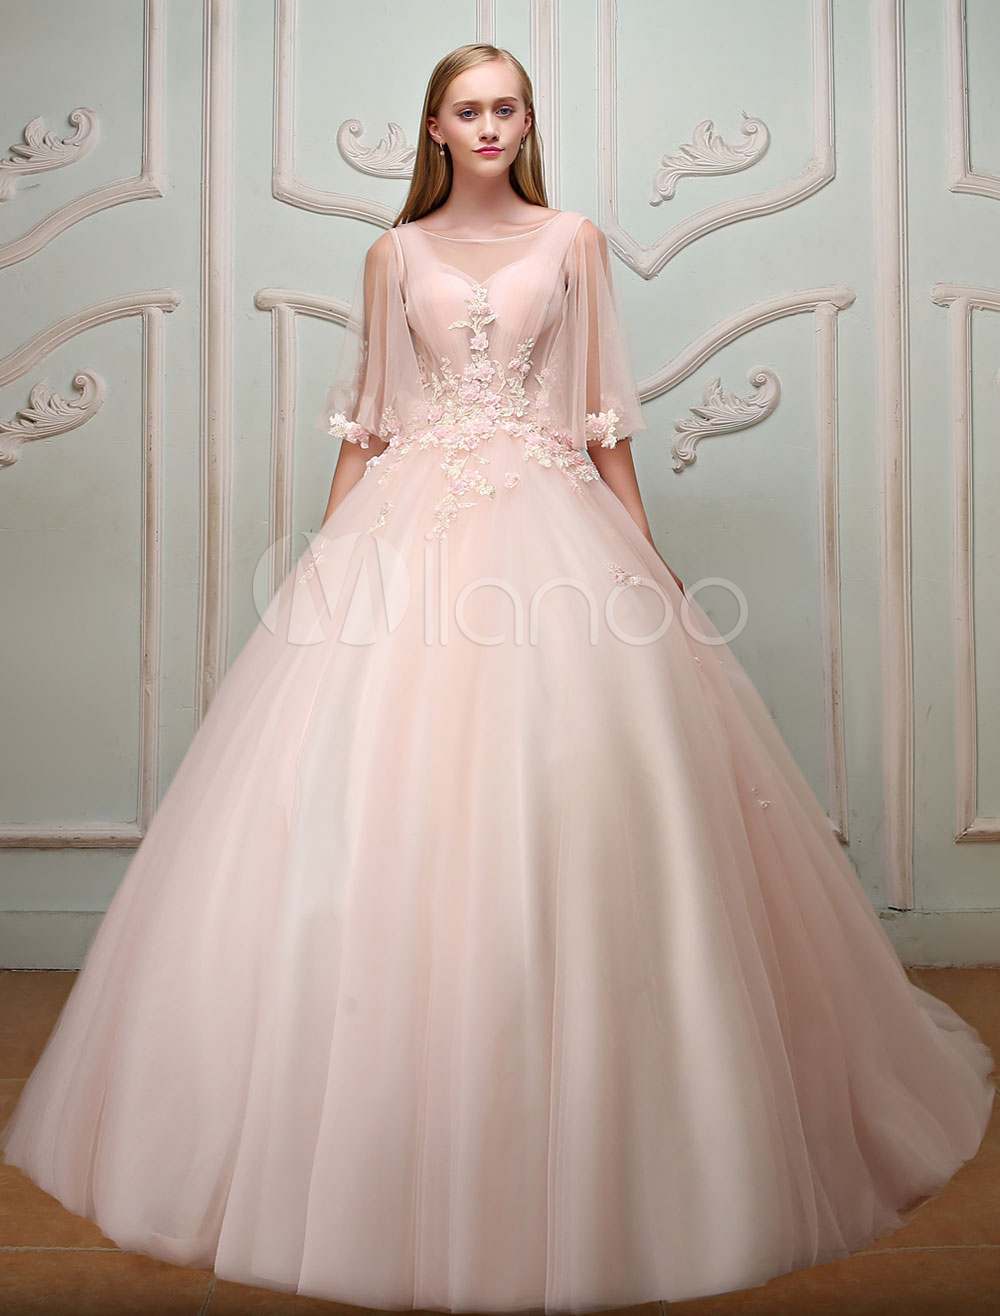 Luxury Quinceanera Dresses Princess Butterfly Sleeve Keyhole Lace Beading Tulle Soft Pink Pageant Dress With Train